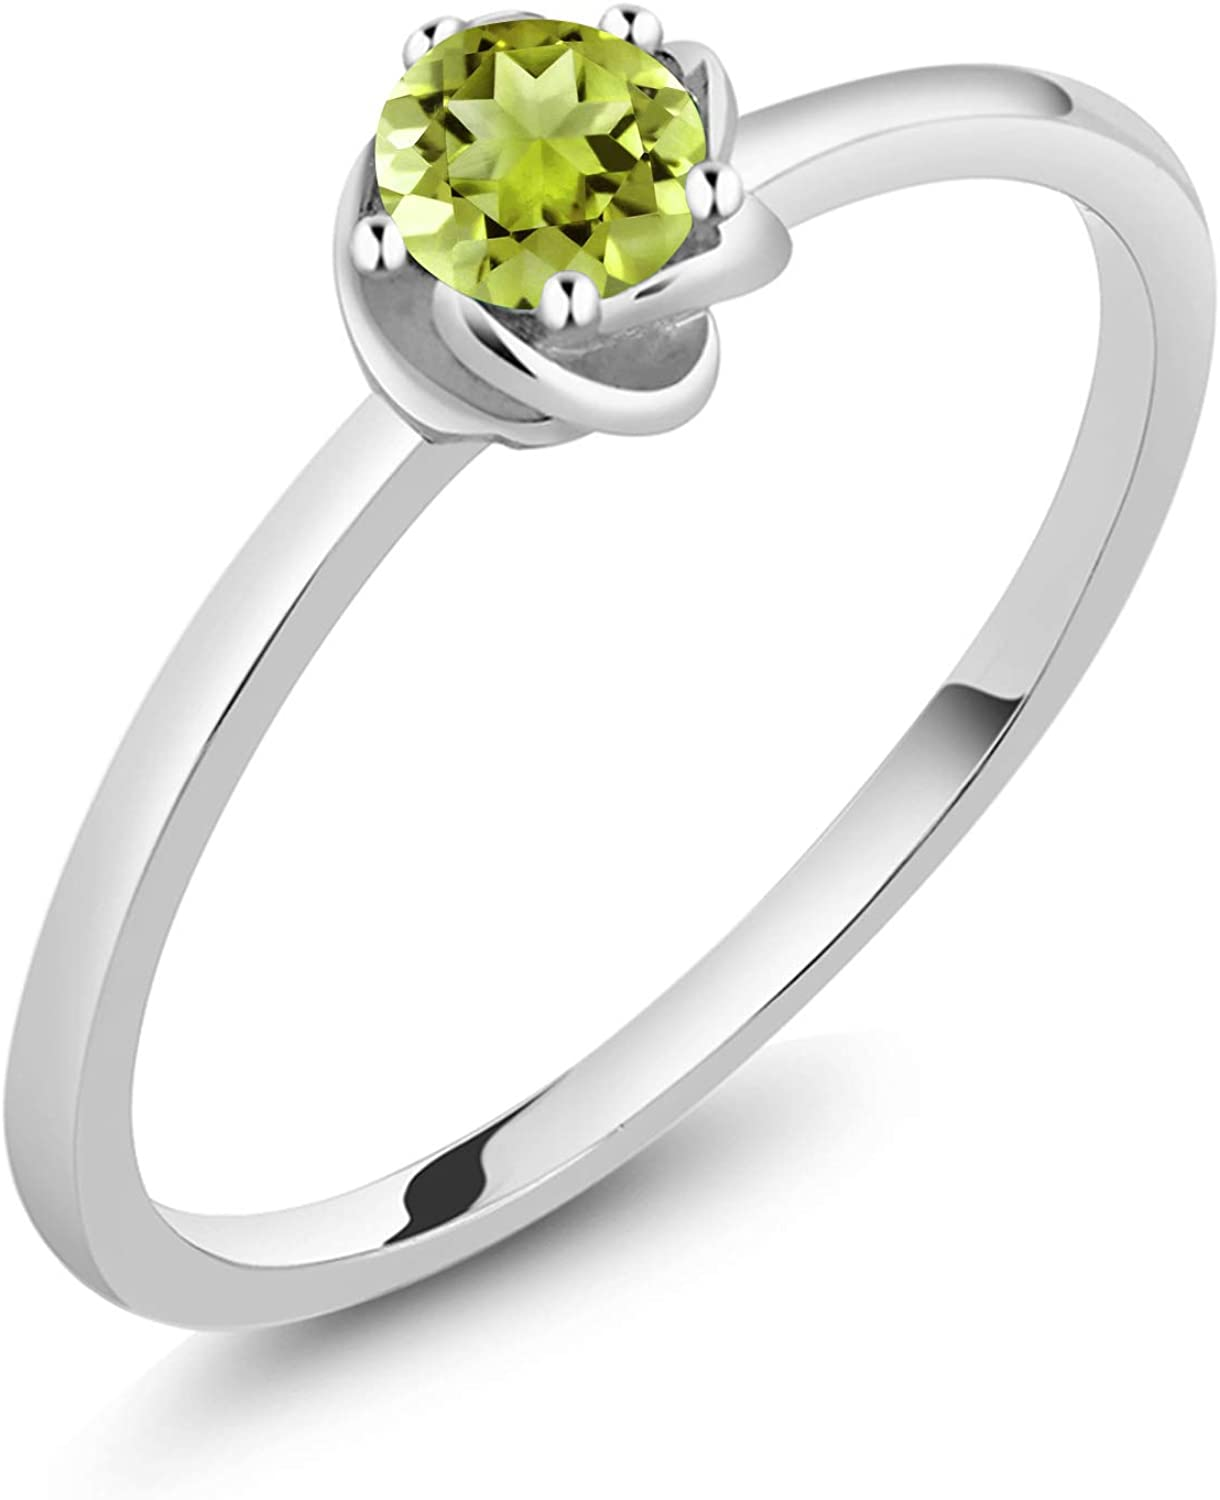 Gem Stone King 10K White Gold Green Peridot Solitaire Engagement Ring 0.18 Ct Round (Available 5,6,7,8,9)